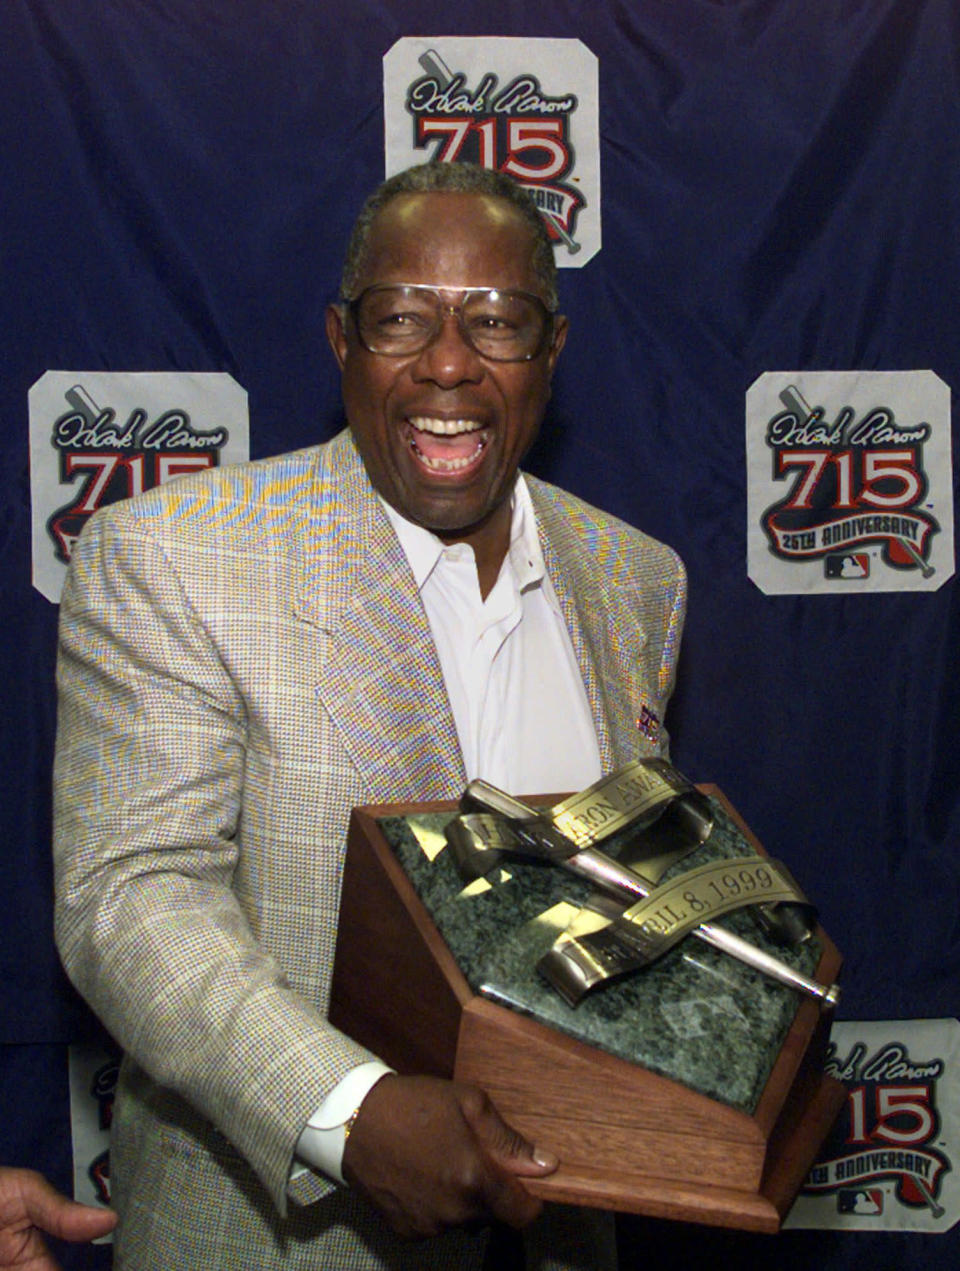 "FILE - In this April 8, 1999, file photo, Major League Baseball's all-time career home run record holder Hank Aaron laughs as he shows off the newly unveiled ""Hank Aaron Award"" during a news conference in Atlanta. Hank Aaron, who endured racist threats with stoic dignity during his pursuit of Babe Ruths home run record and gracefully left his mark as one of baseballs greatest all-around players, died Friday. He was 86. The Atlanta Braves, Aaron's longtime team, said he died peacefully in his sleep. No cause was given. (AP Photo/John Bazemore, File)"